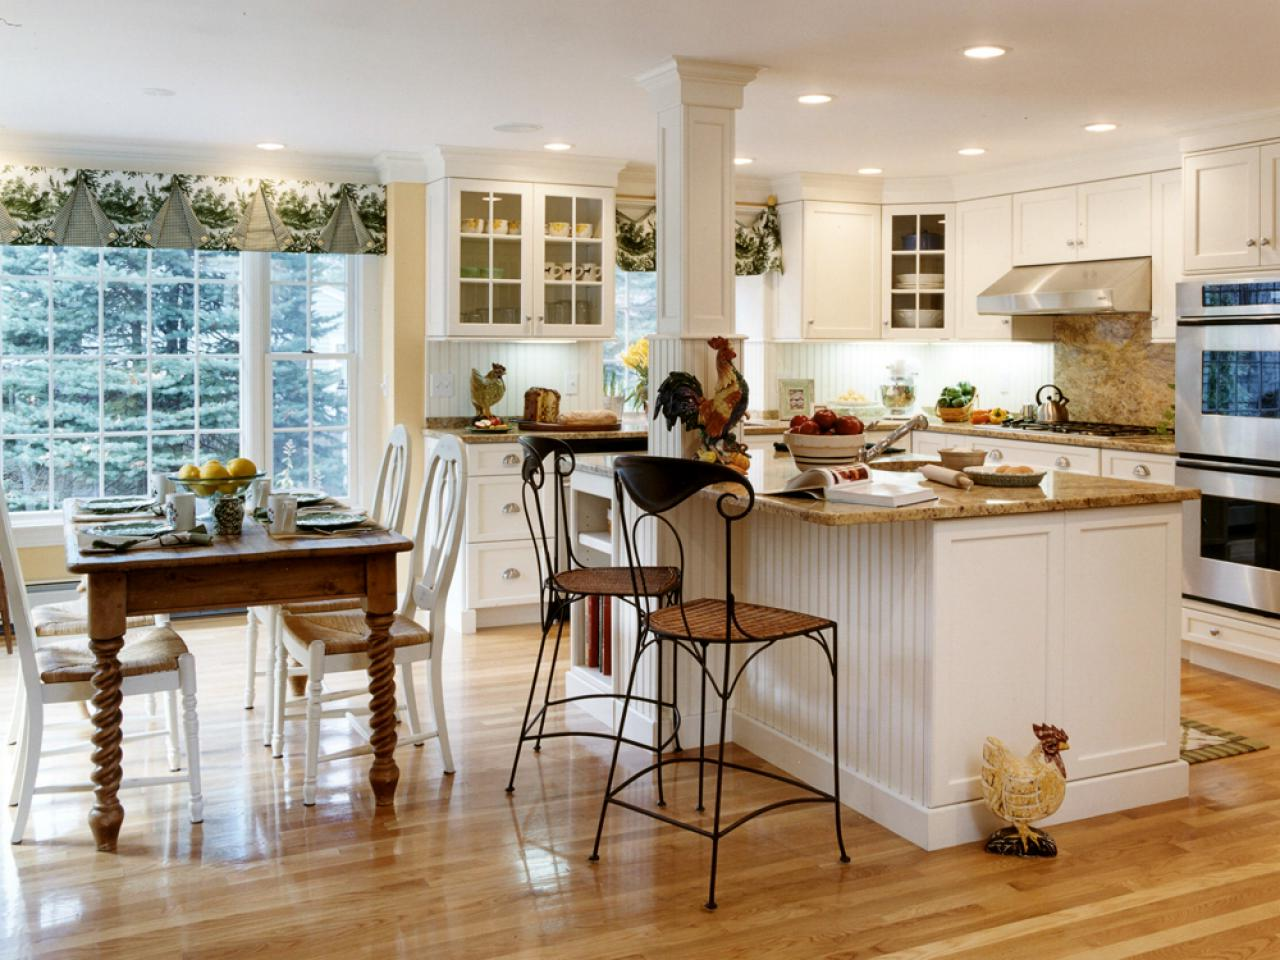 Kitchen Design Images U2013 Kitchen In Country Style With Wooden Floors, Wooden  Table, Kitchen